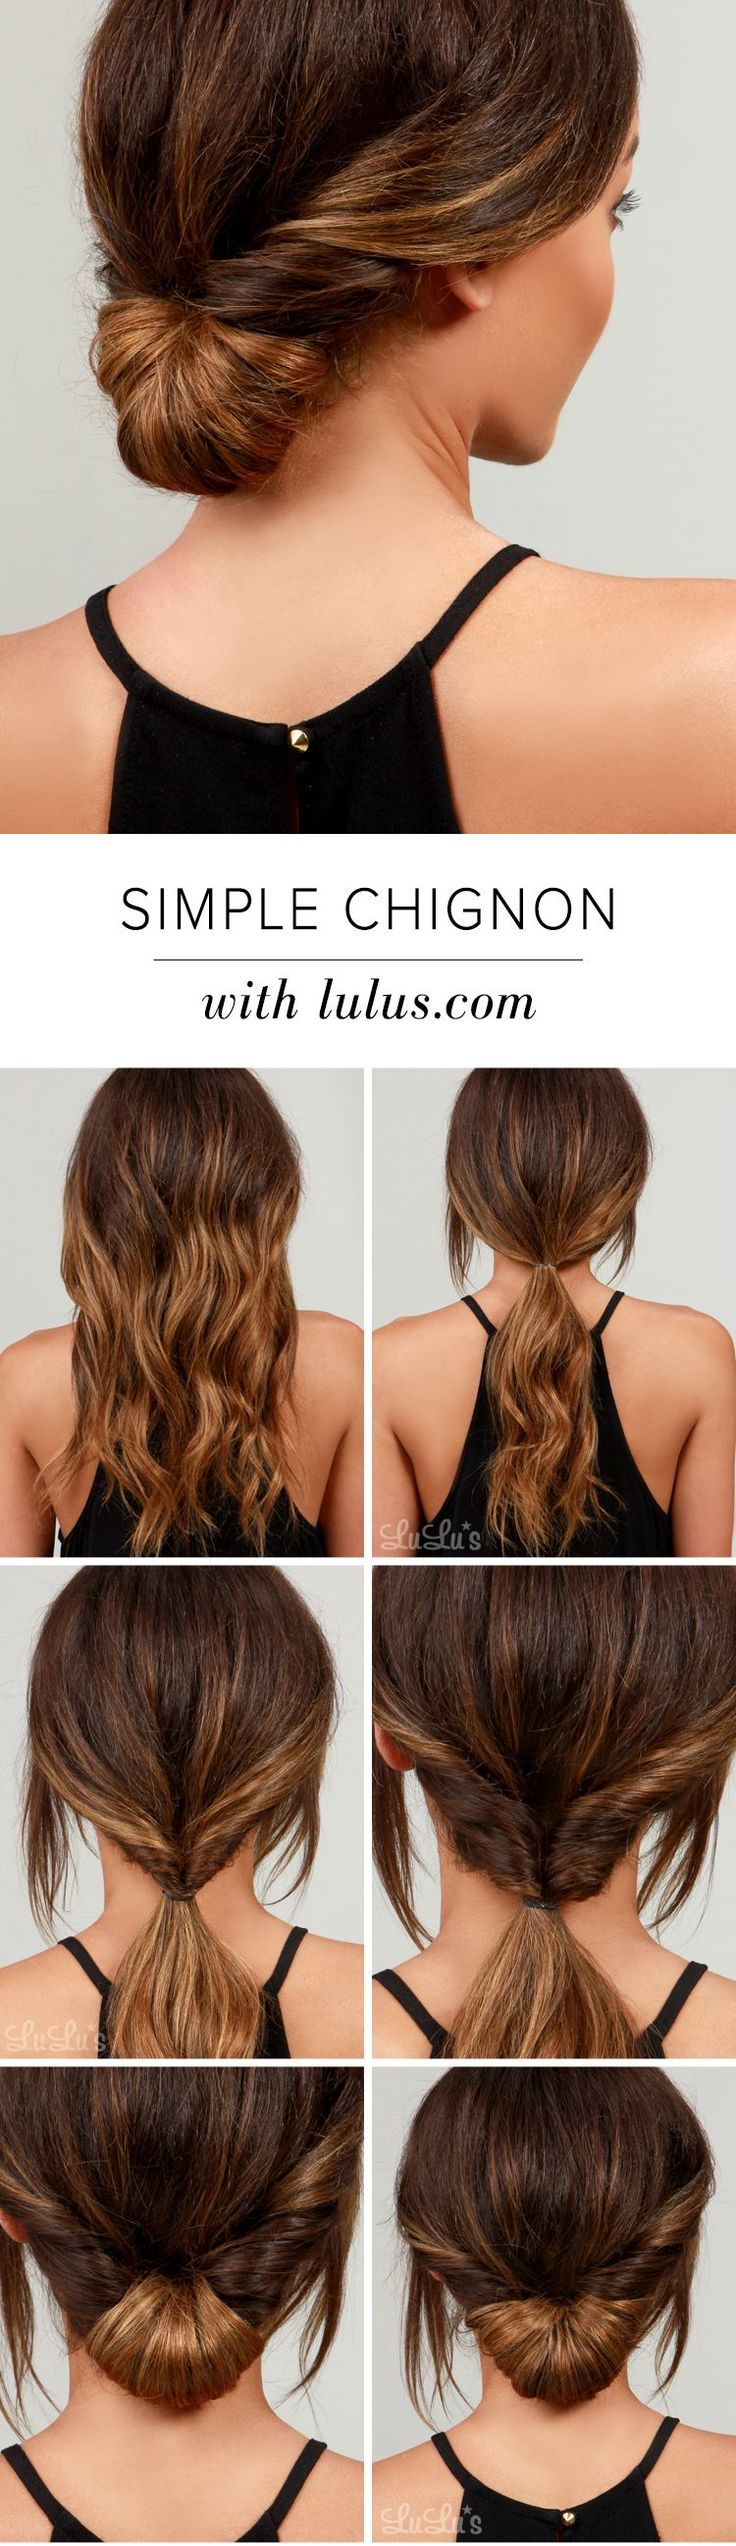 1000 Ideas About Easy Chignon On Pinterest Chignon Updo Easy